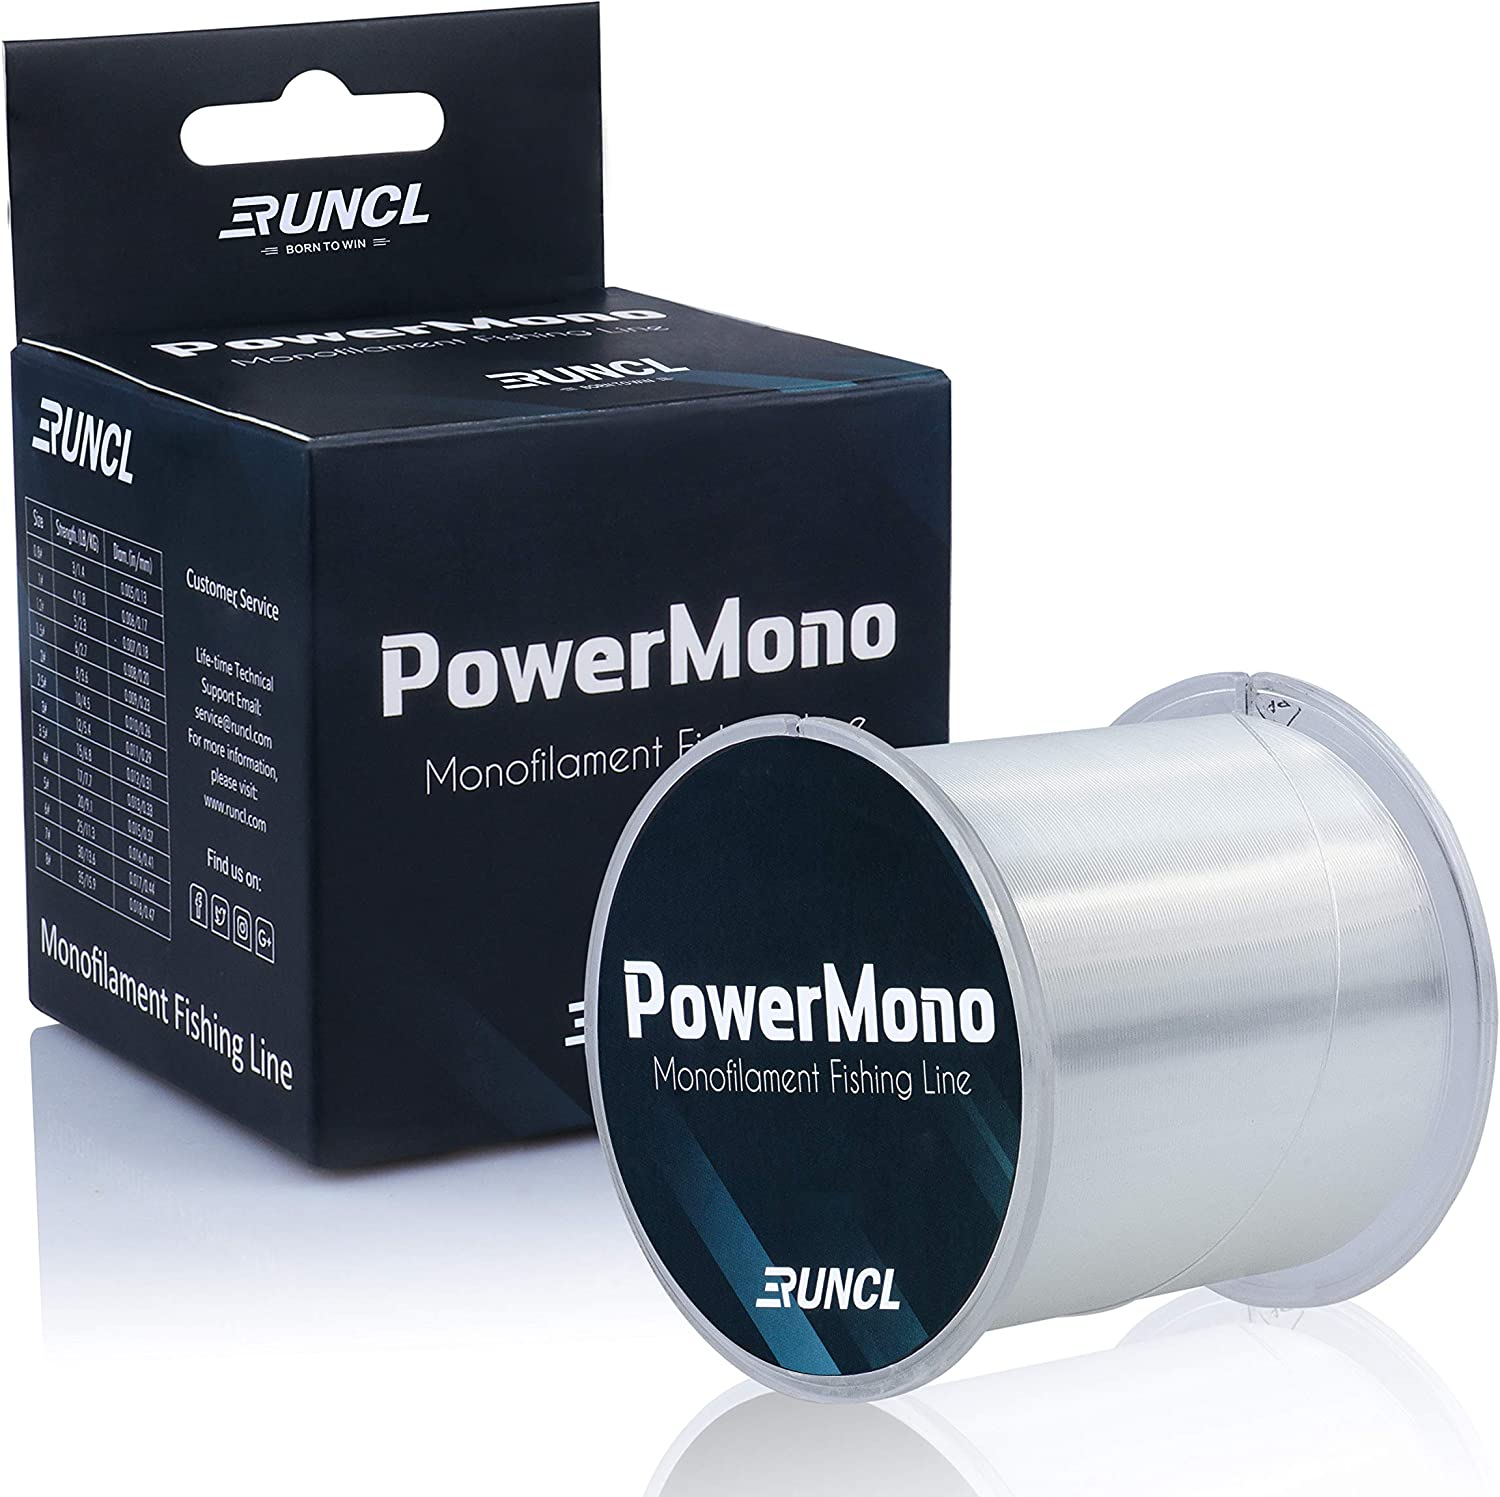 RUNCL PowerMono Fishing Line, Monofilament Fishing Line 300/500/1000Yds - Ultimate Strength, Shock Absorber, Suspend in Water, Knot Friendly - Mono Fishing Line 3-35LB, Low- & High-Vis Available : Sports & Outdoors